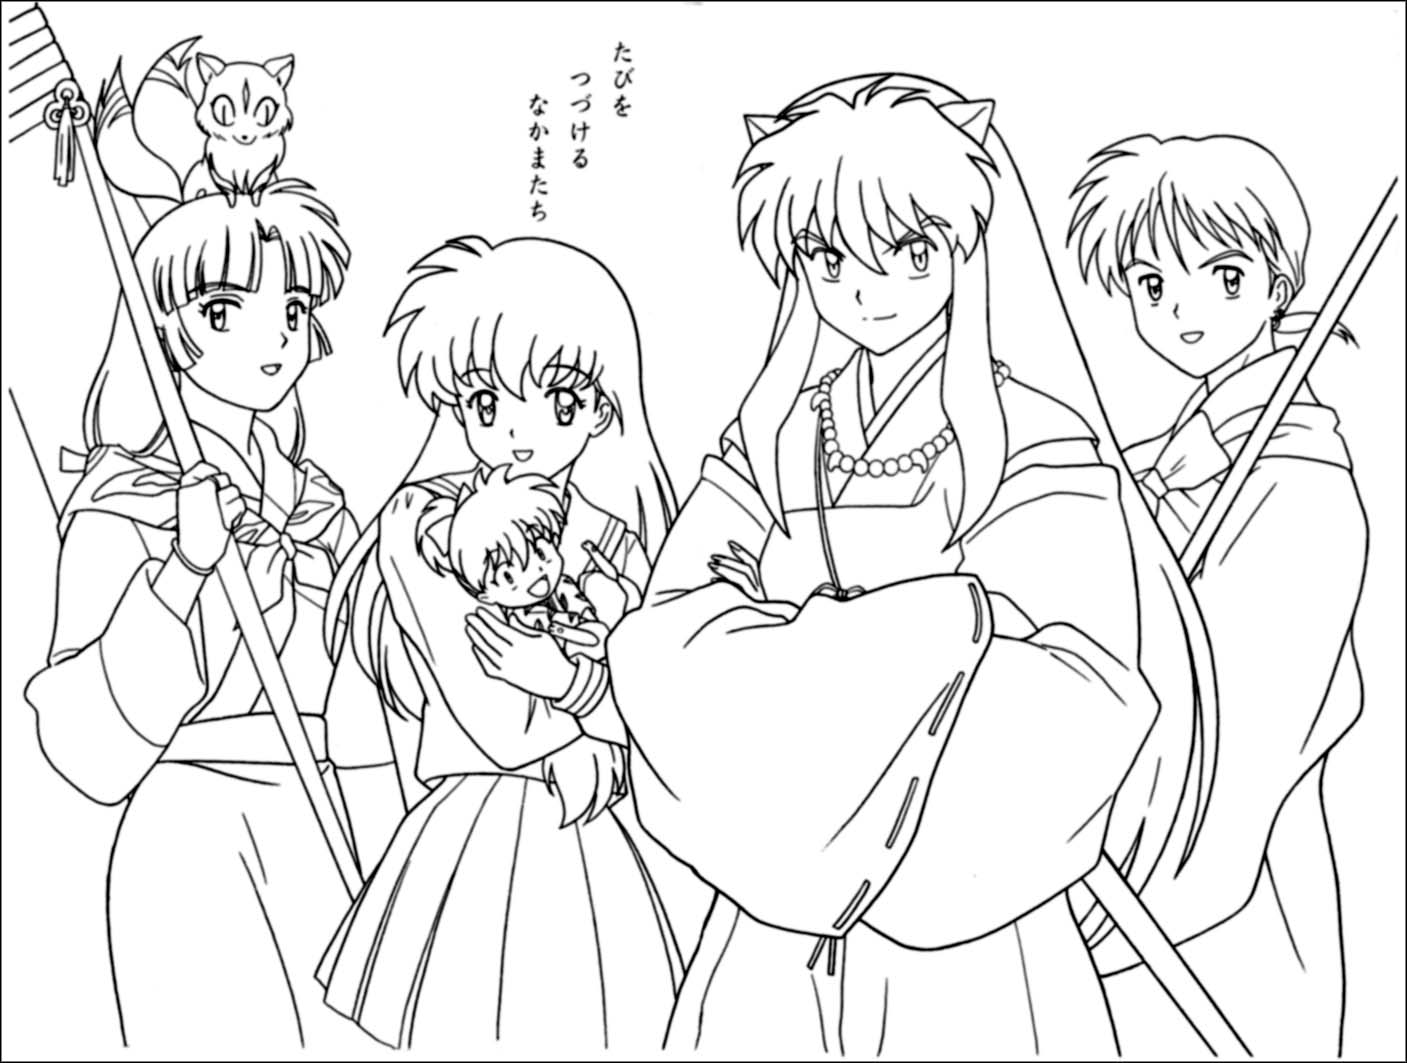 Anime Girls Group Coloring Page - Coloring Home